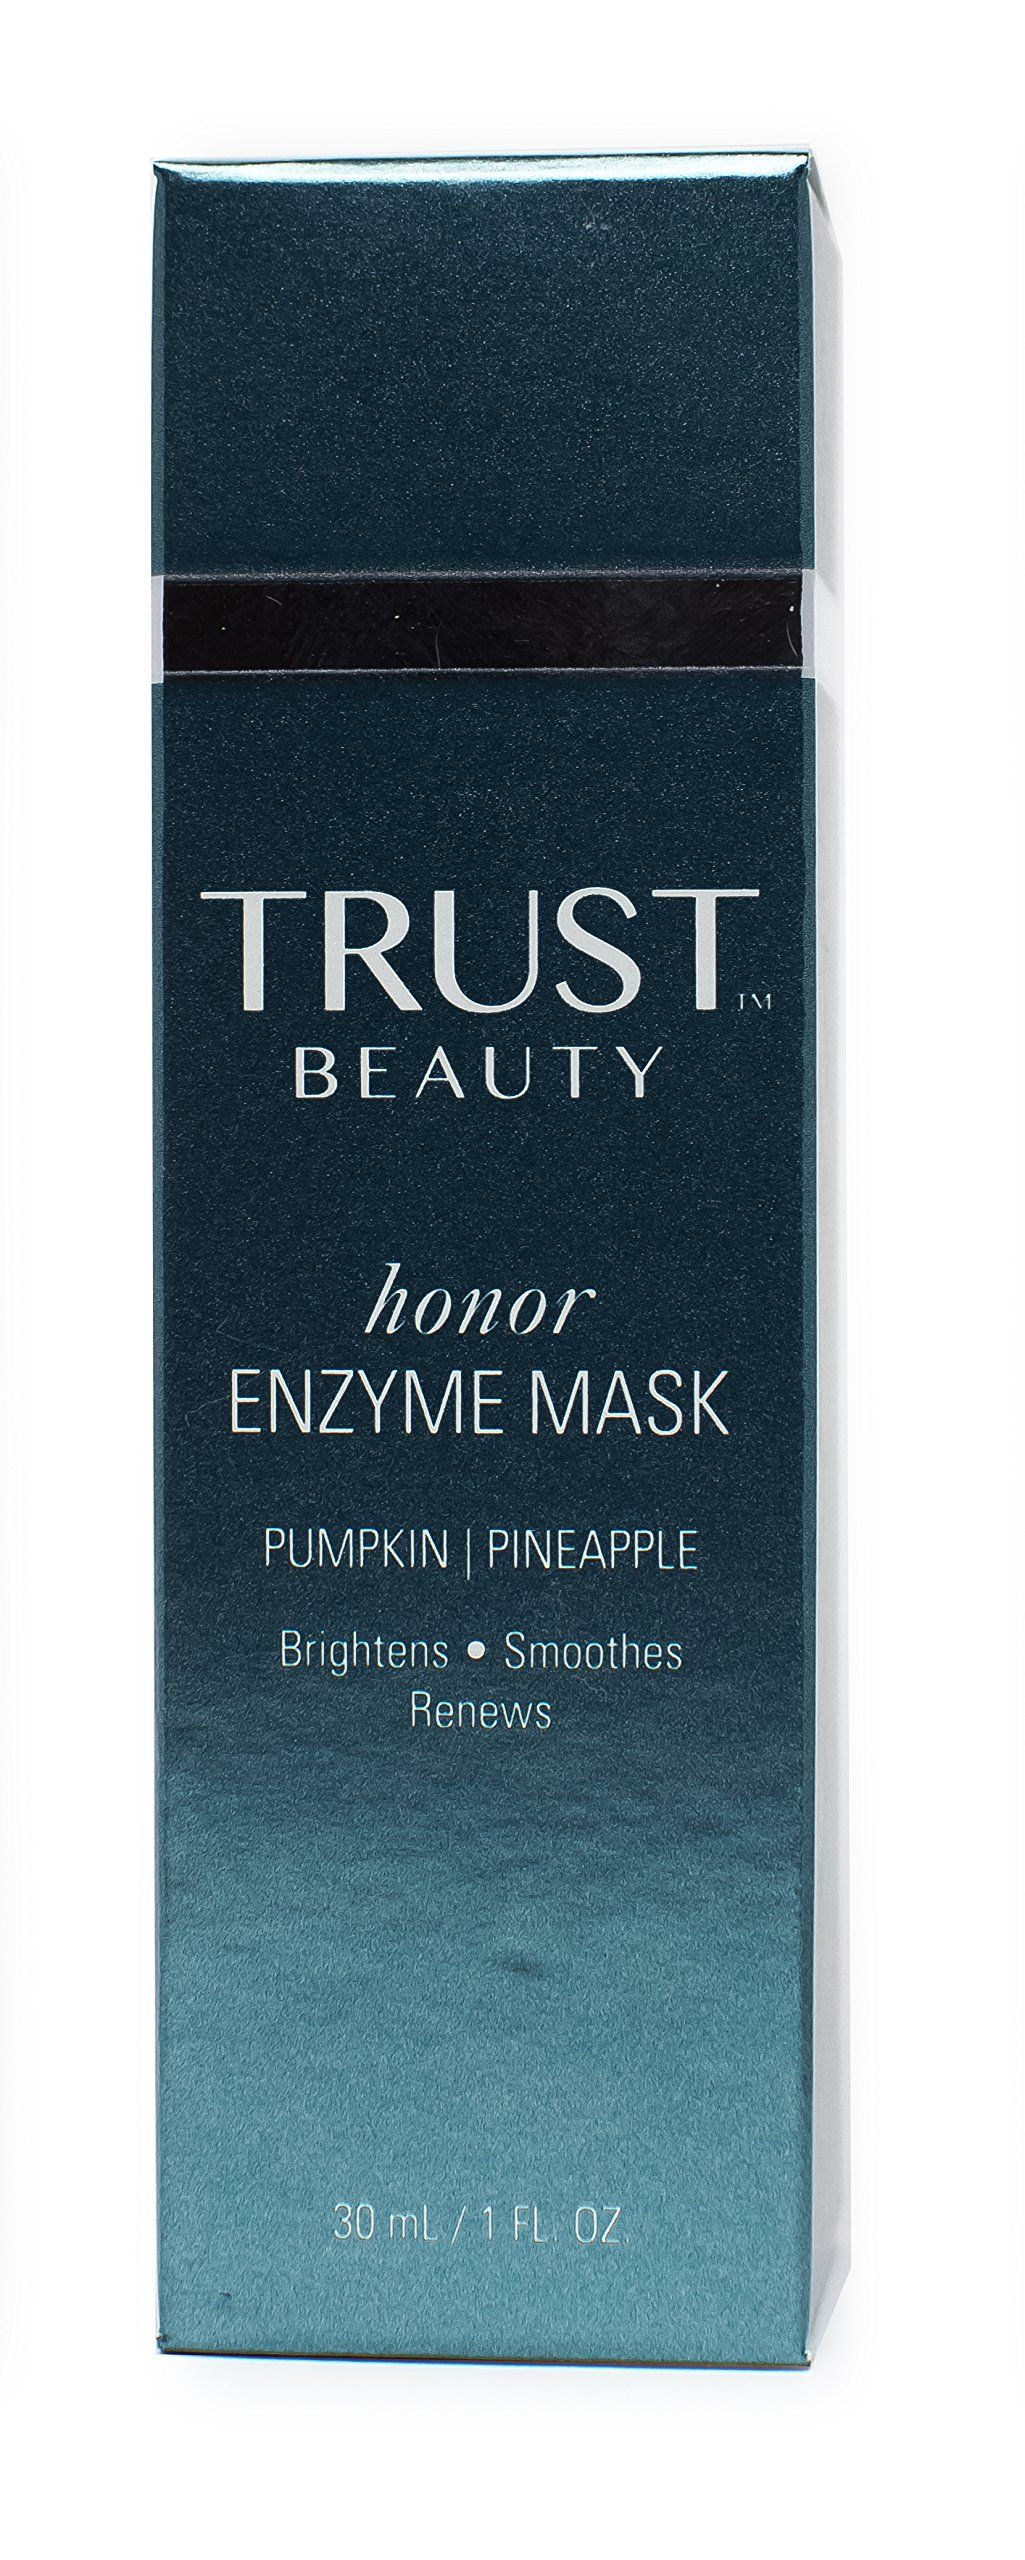 Honor Plant Based Face Mask by TRUST Beauty Natural Enzyme